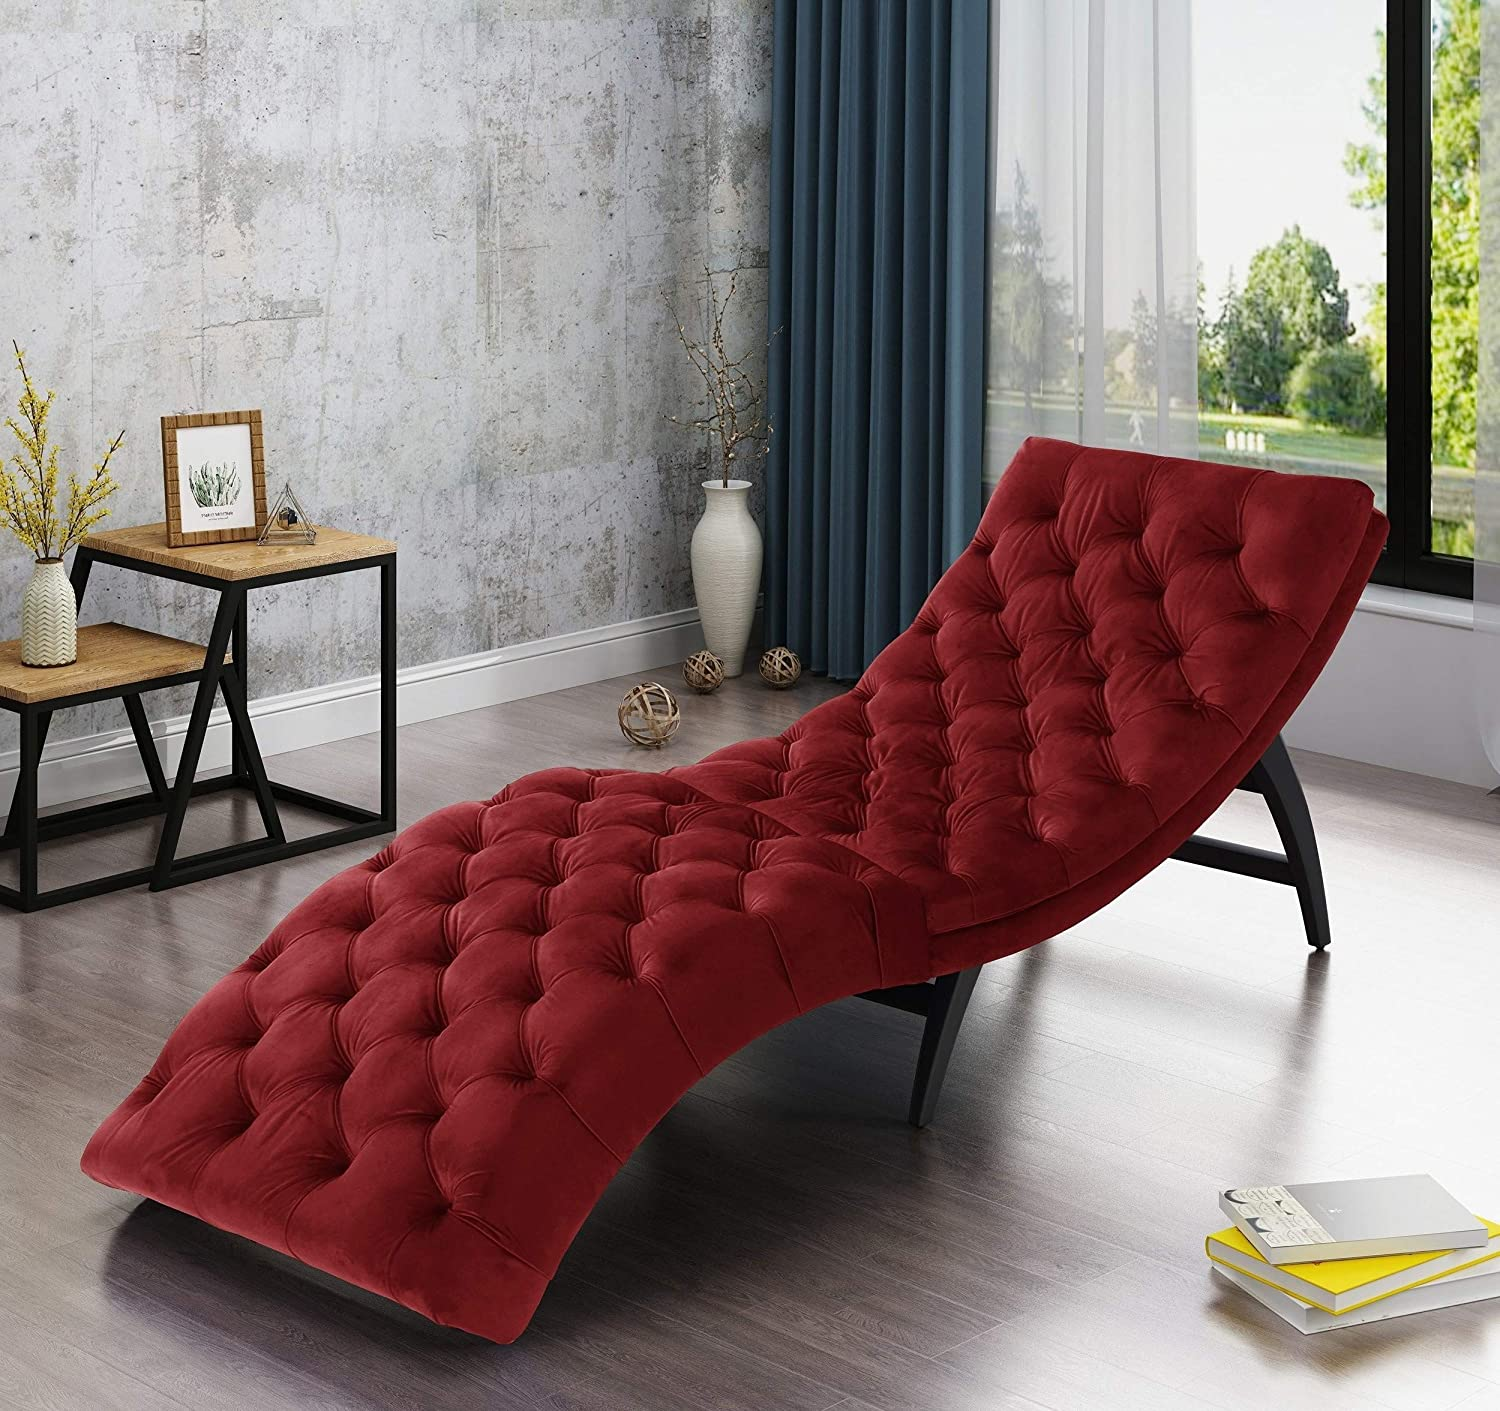 - Amazon.com: Large Chaise Lounge Chair With Elegant Tufted Velvet